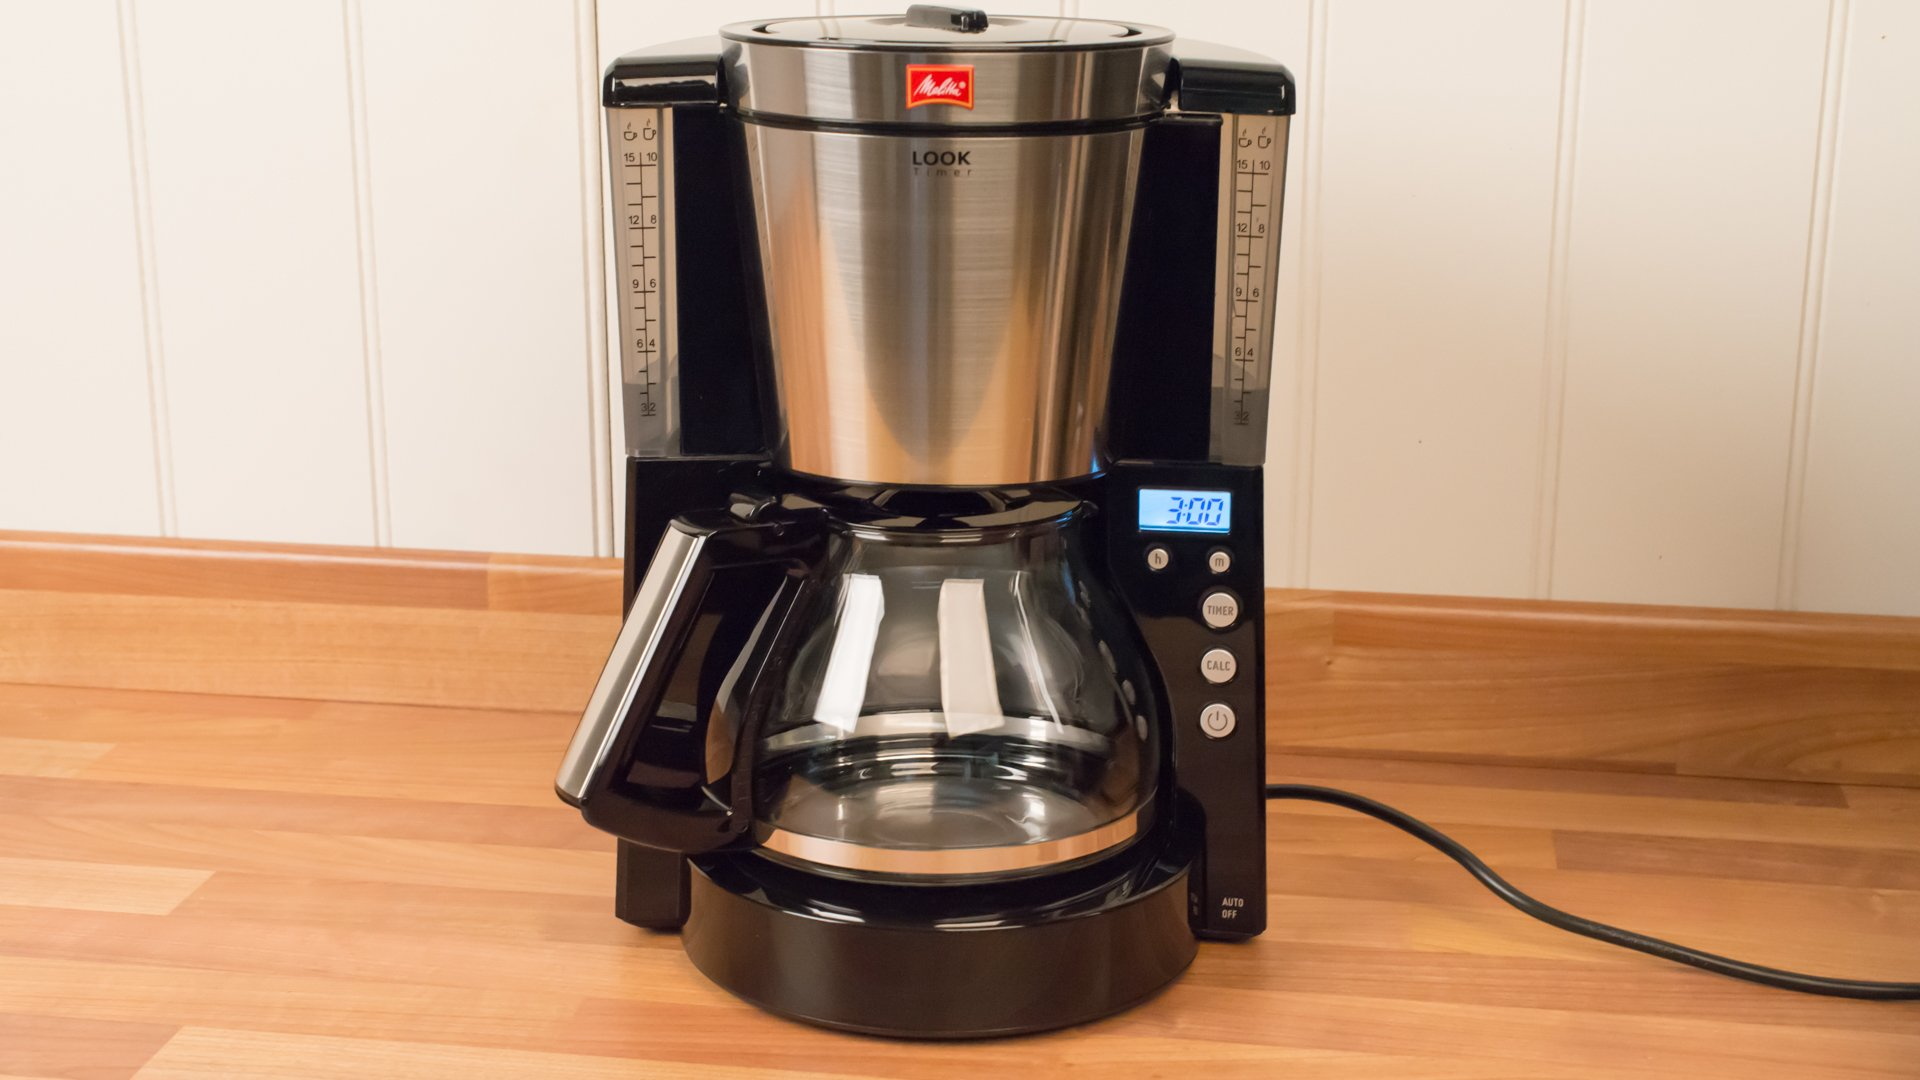 Melitta Look Timer Review Expert Reviews